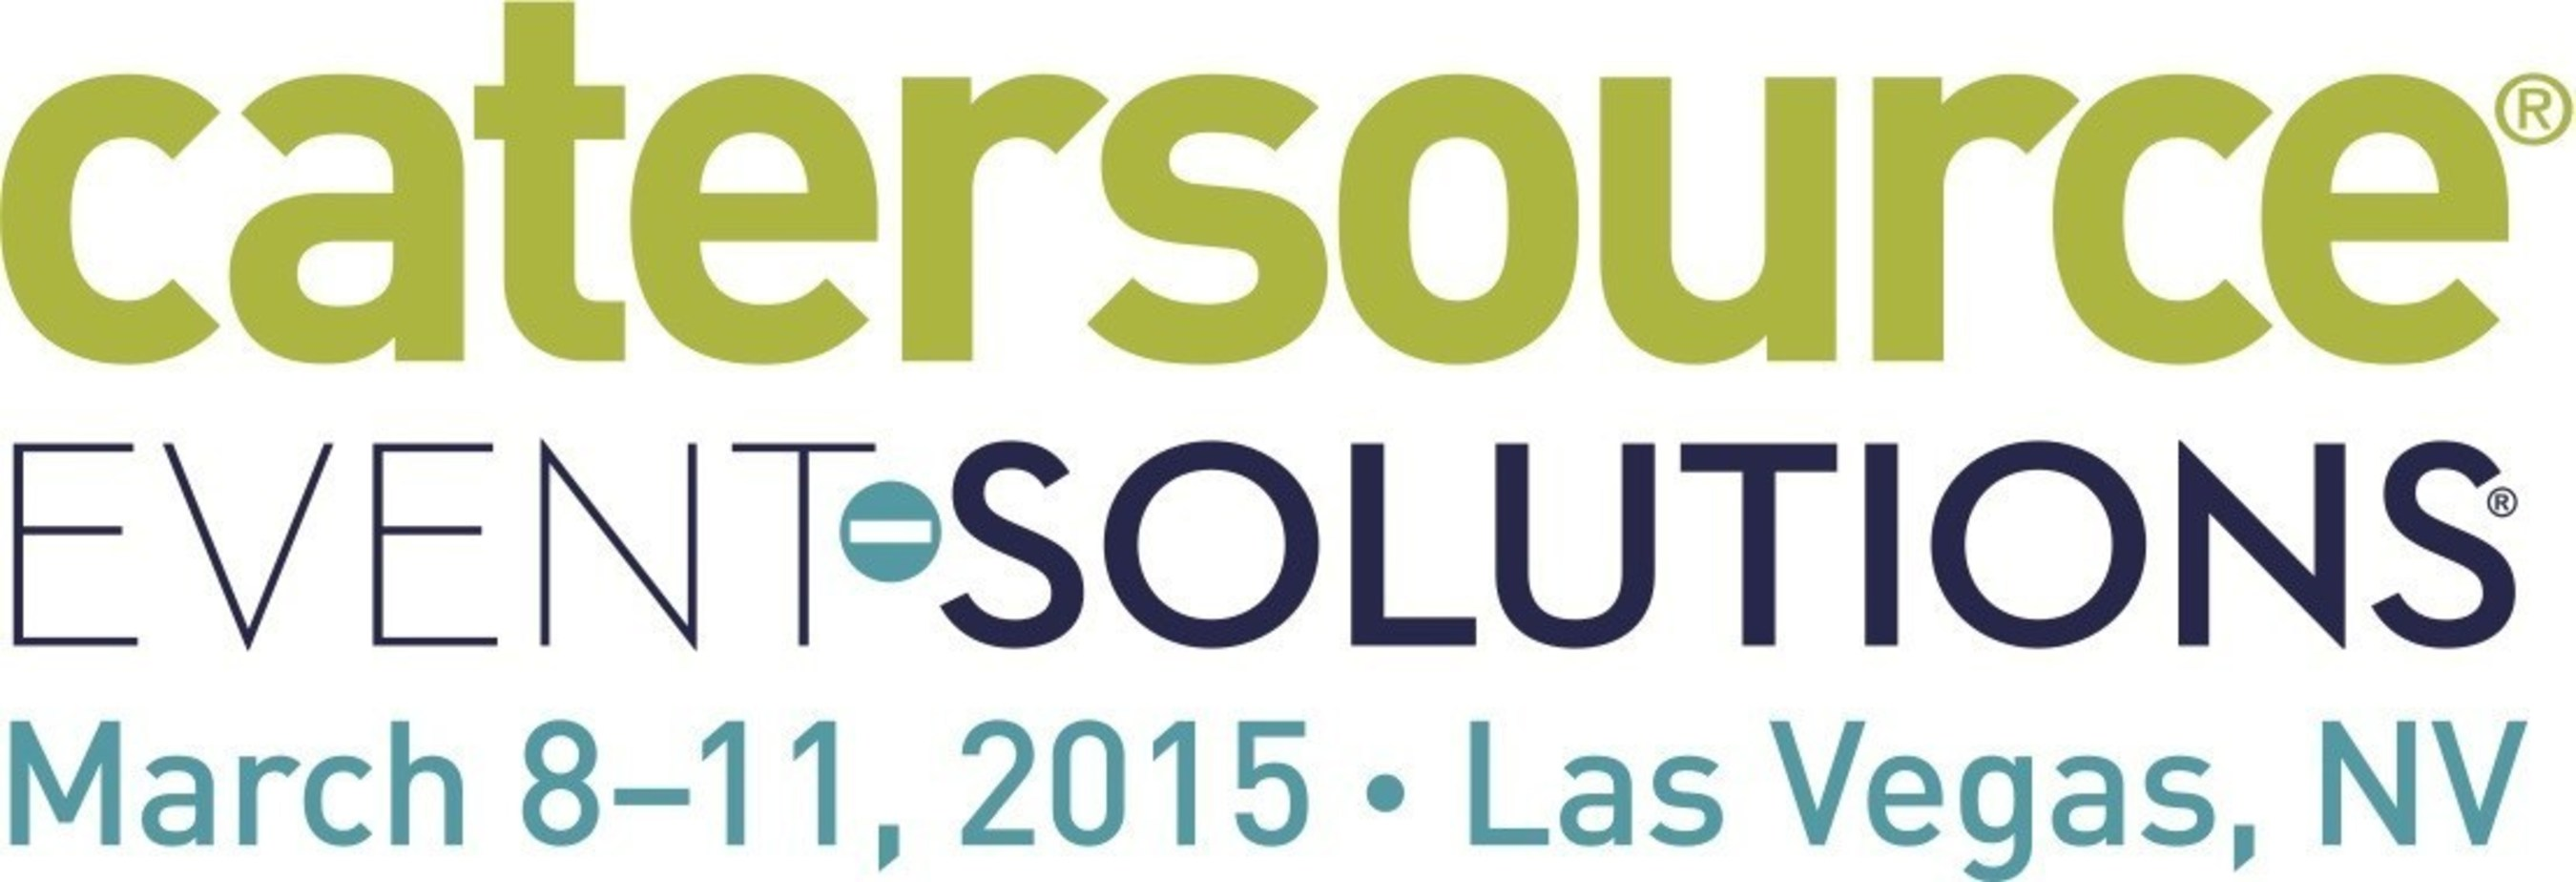 Catersource and Event Solutions Conference & Tradeshow runs from March 8-11, 2015 at Caesars Palace and the Las Vegas Convention Center in Las Vegas, NV.